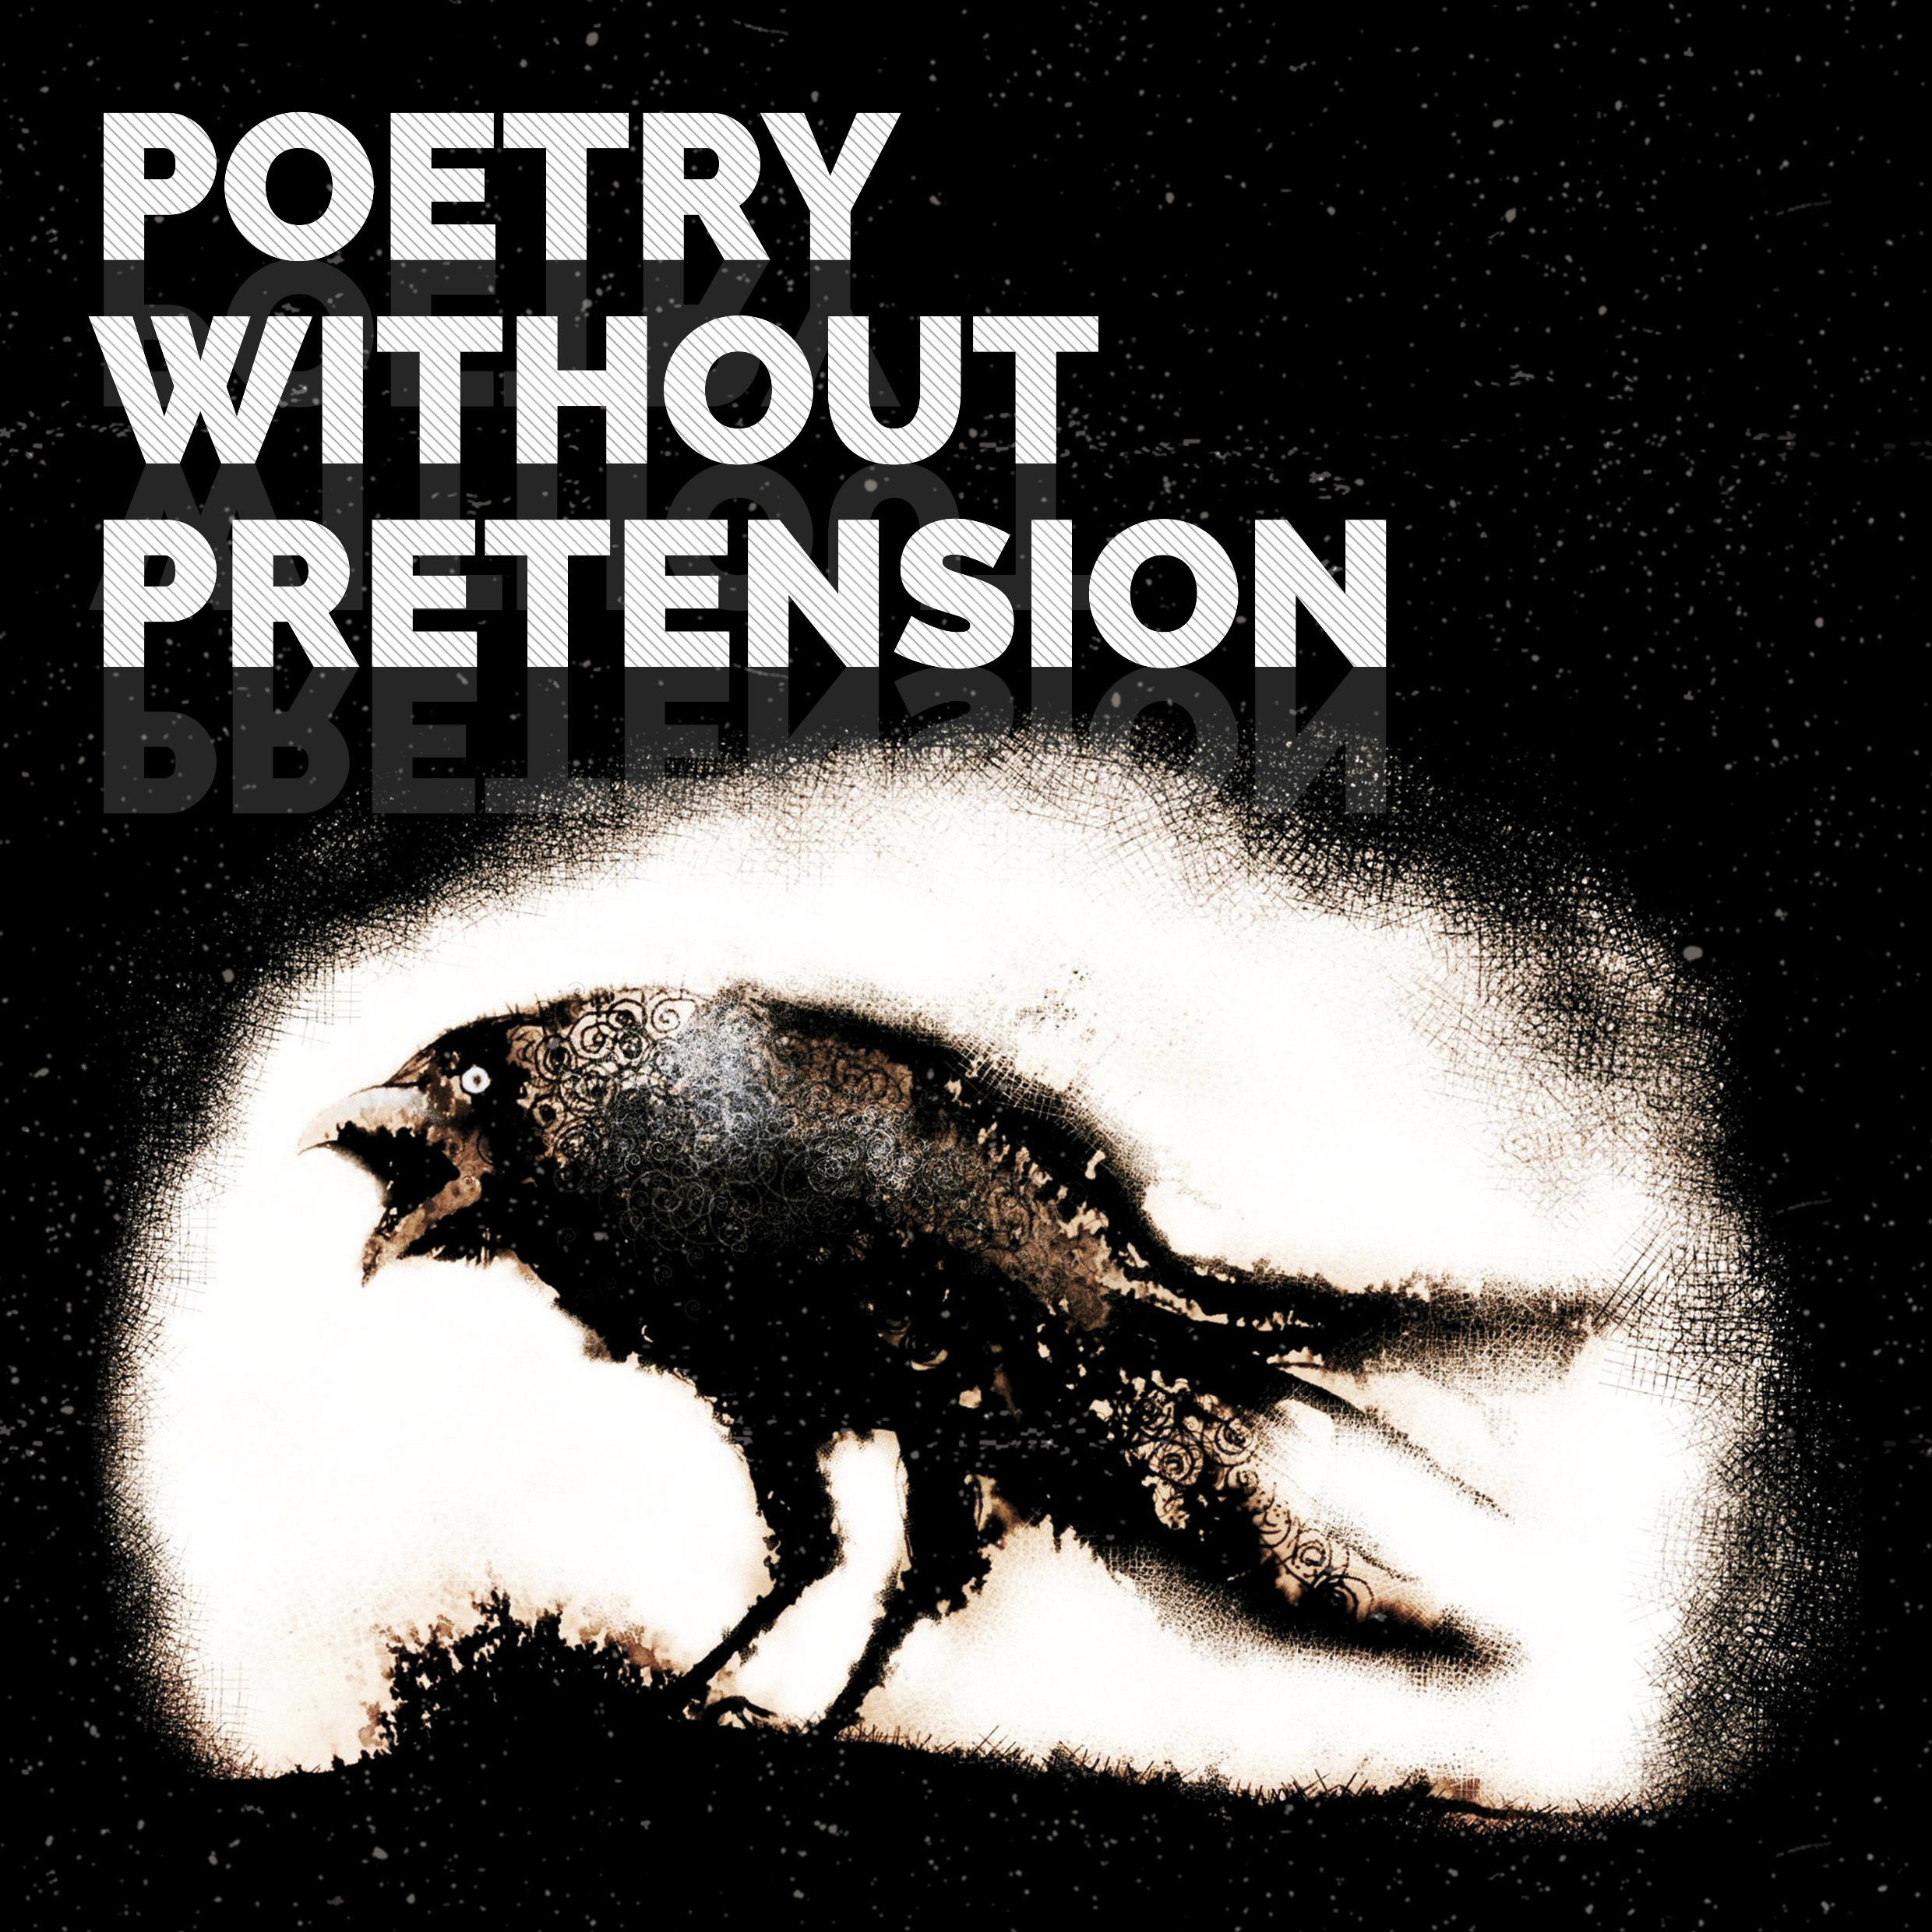 Poetry Without Pretension Book GoFundME Booster Promotion ...